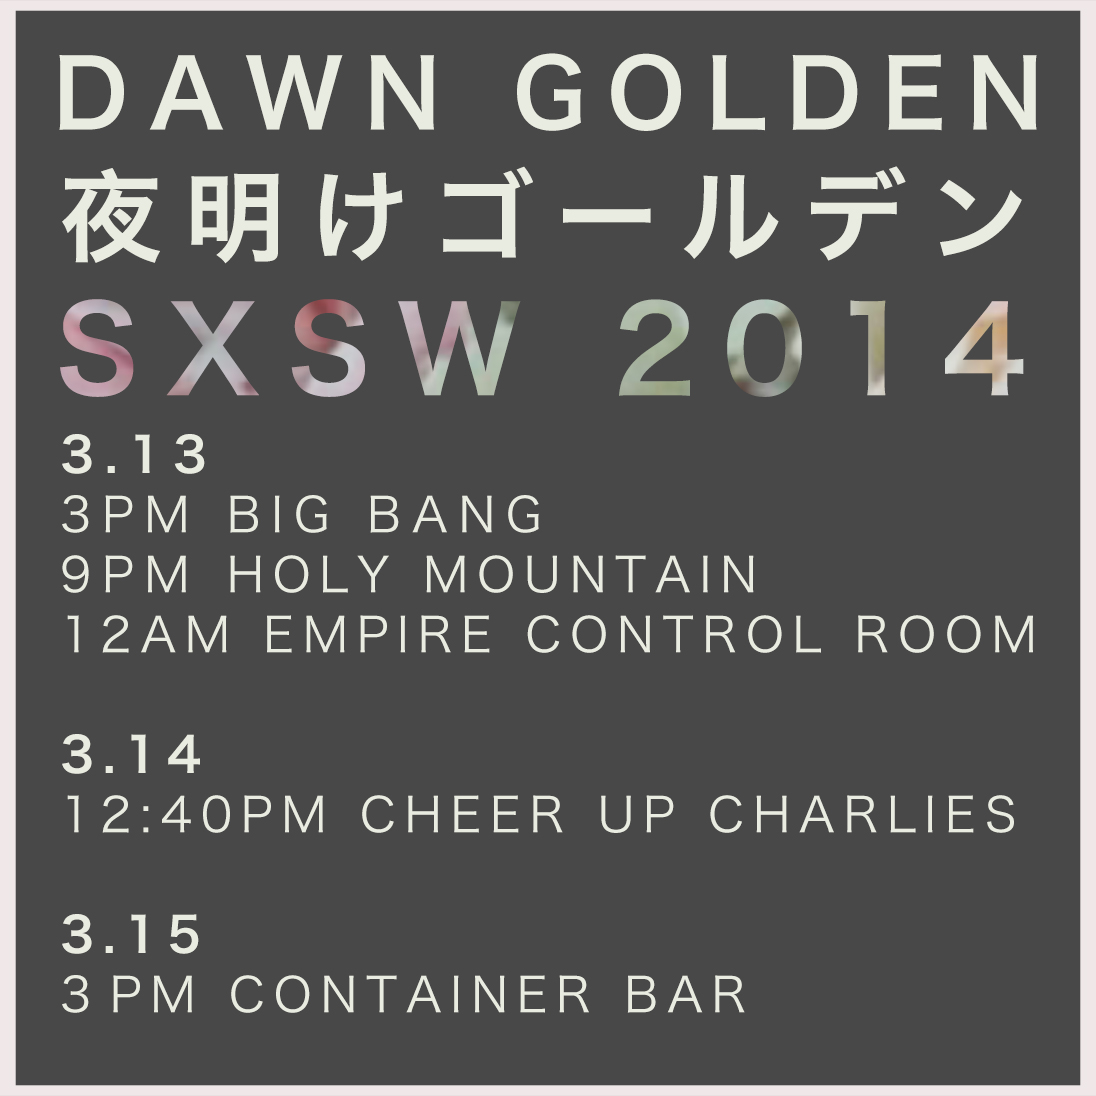 Full SXSW Schedule:  3-13 3pm @ Big Bang for Devise Magazine 9pm @ Holy Mountain Indoors for Flowerbooking Party 12am @ Empire Control Room for Mad Decent Party 3-14 12:40pm @ Cheer Up Charlie's for Flowerbooking Party 3-15 3pm @ Container Bar for Filter/Stones Throw (DJ Set) Hope to see some of you out in Austin!